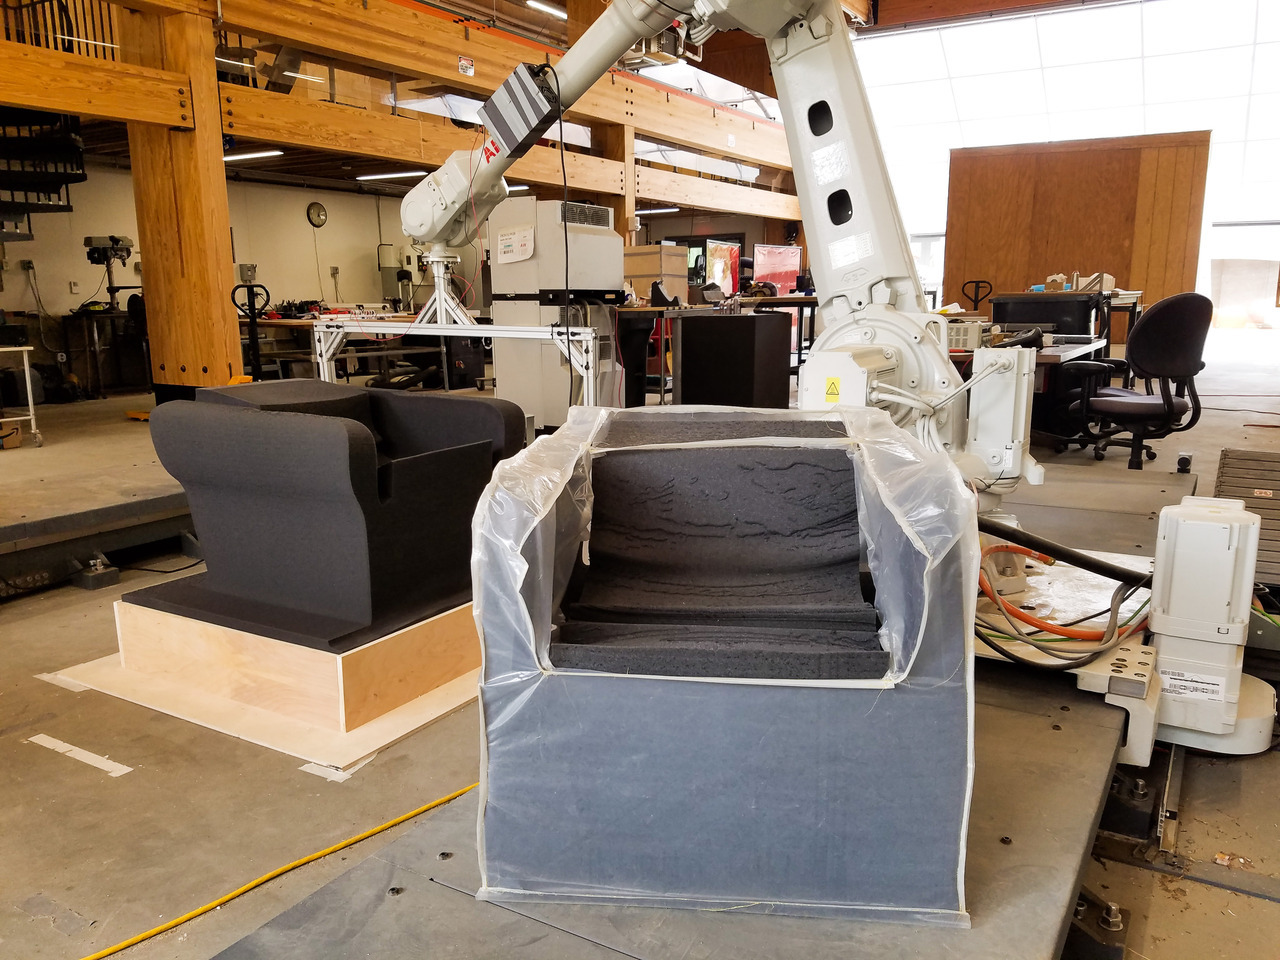 Hot Grandma chair, fabricated with robotic controlled hotwire at the Embodied computation Lab at Princeton University, exhibited at the Storefront for Art + Architecture June 21 - August 24 2018.